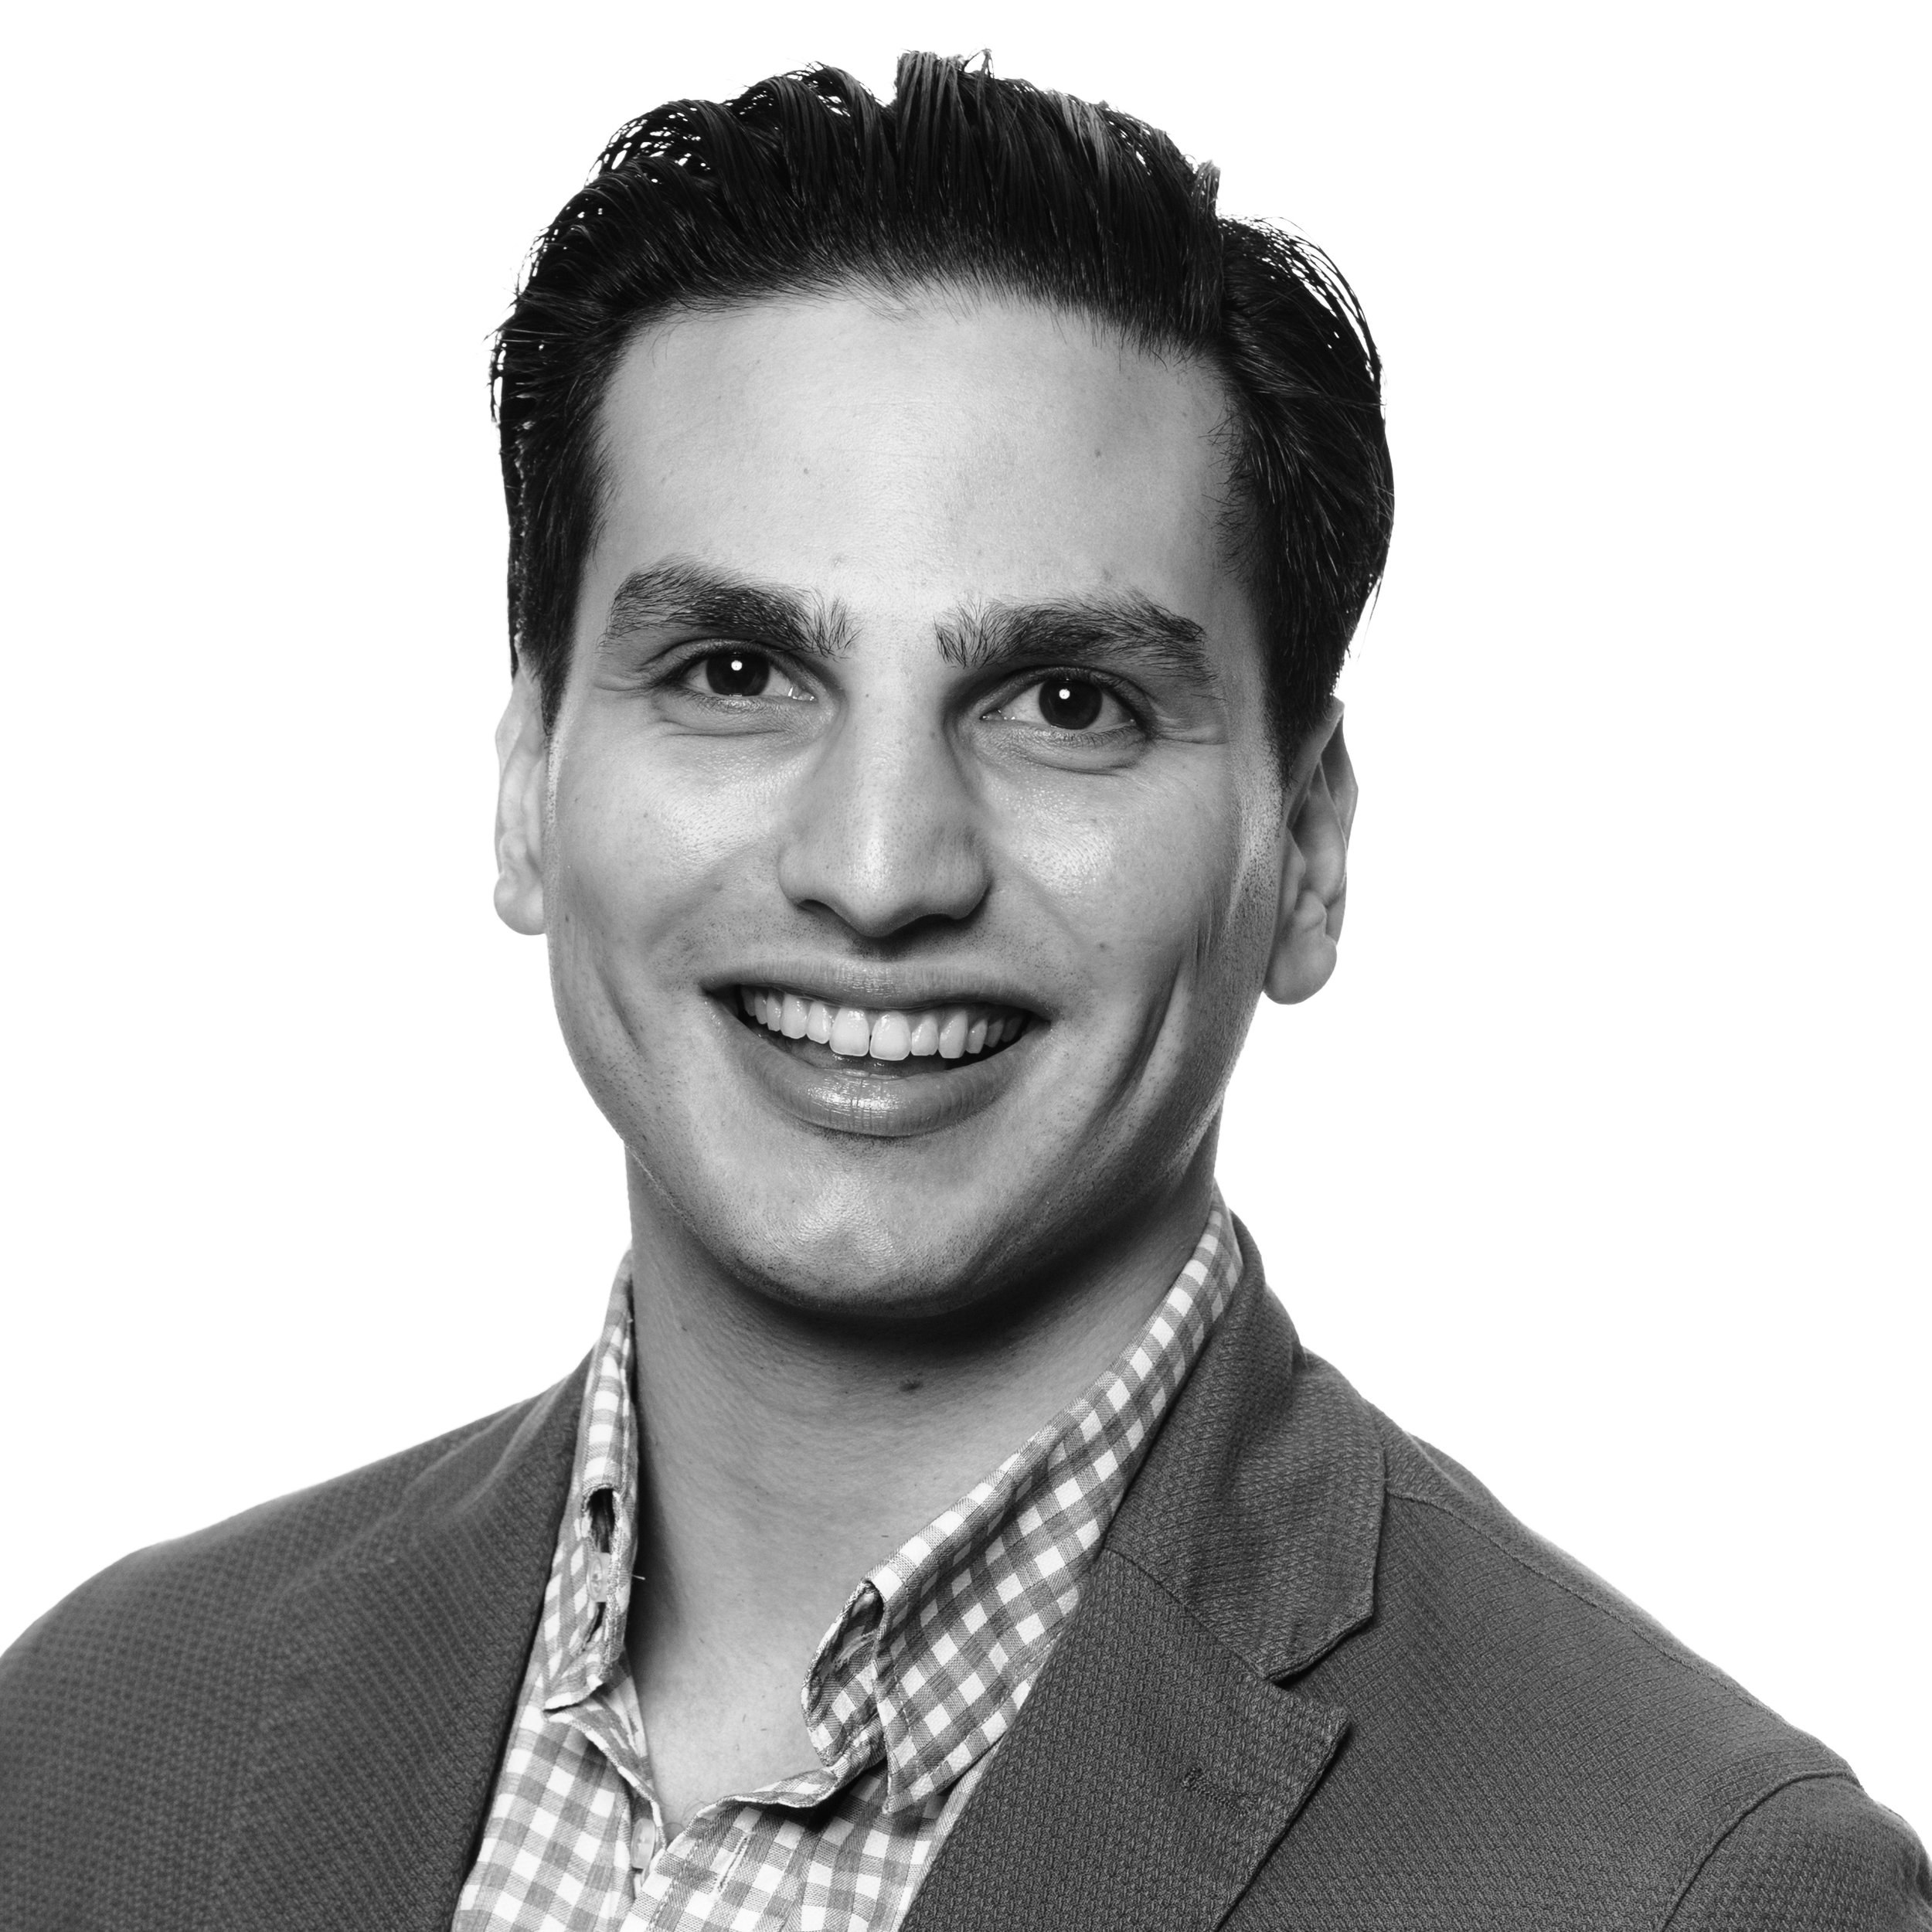 Nicholas antoniou - Nicholas leads the Plus Seniors Living sector portfolio across all studios, overseeing the development of innovative aged care and retirement living projects. A committed mentor in and out of Plus, Nicholas is a member of the Urban Land Institute Young Leaders Group.